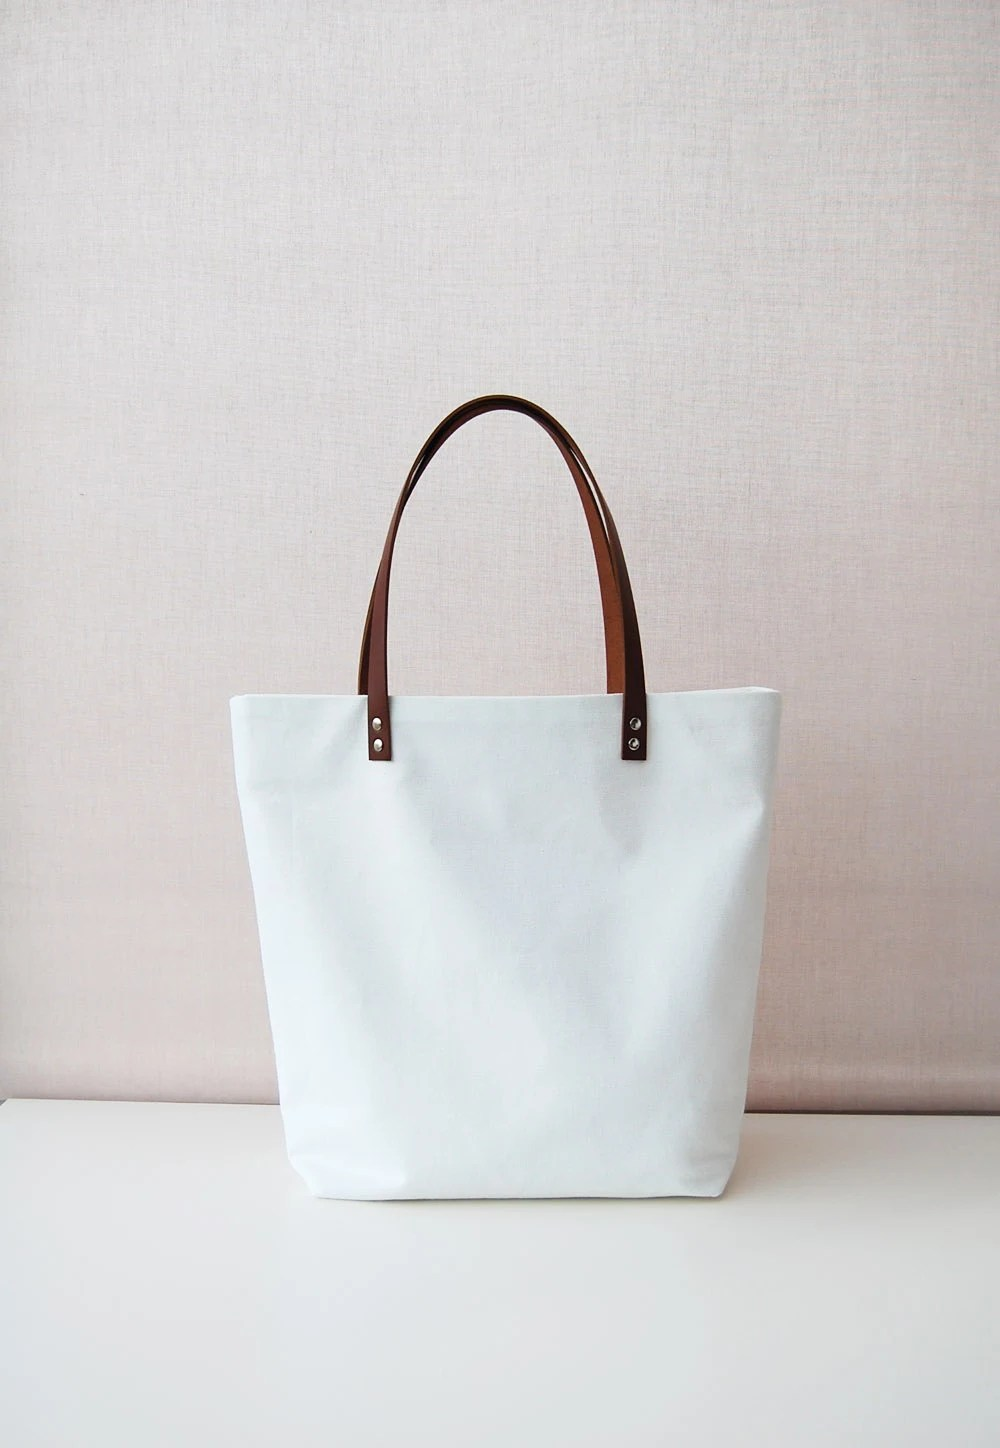 White Canvas tote bag with leather handles - ForestBags